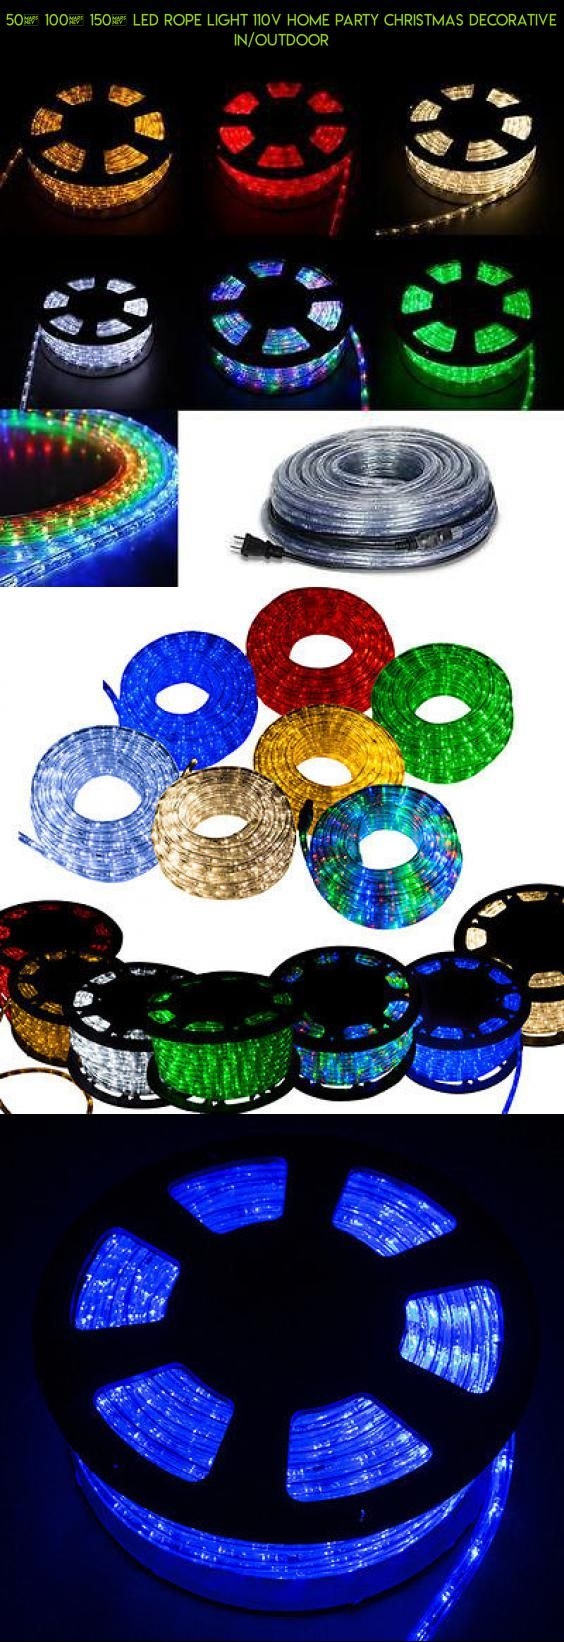 50 100 150 led rope light 110v home party christmas decorative 50 100 150 led rope light 110v home party christmas decorative in aloadofball Image collections